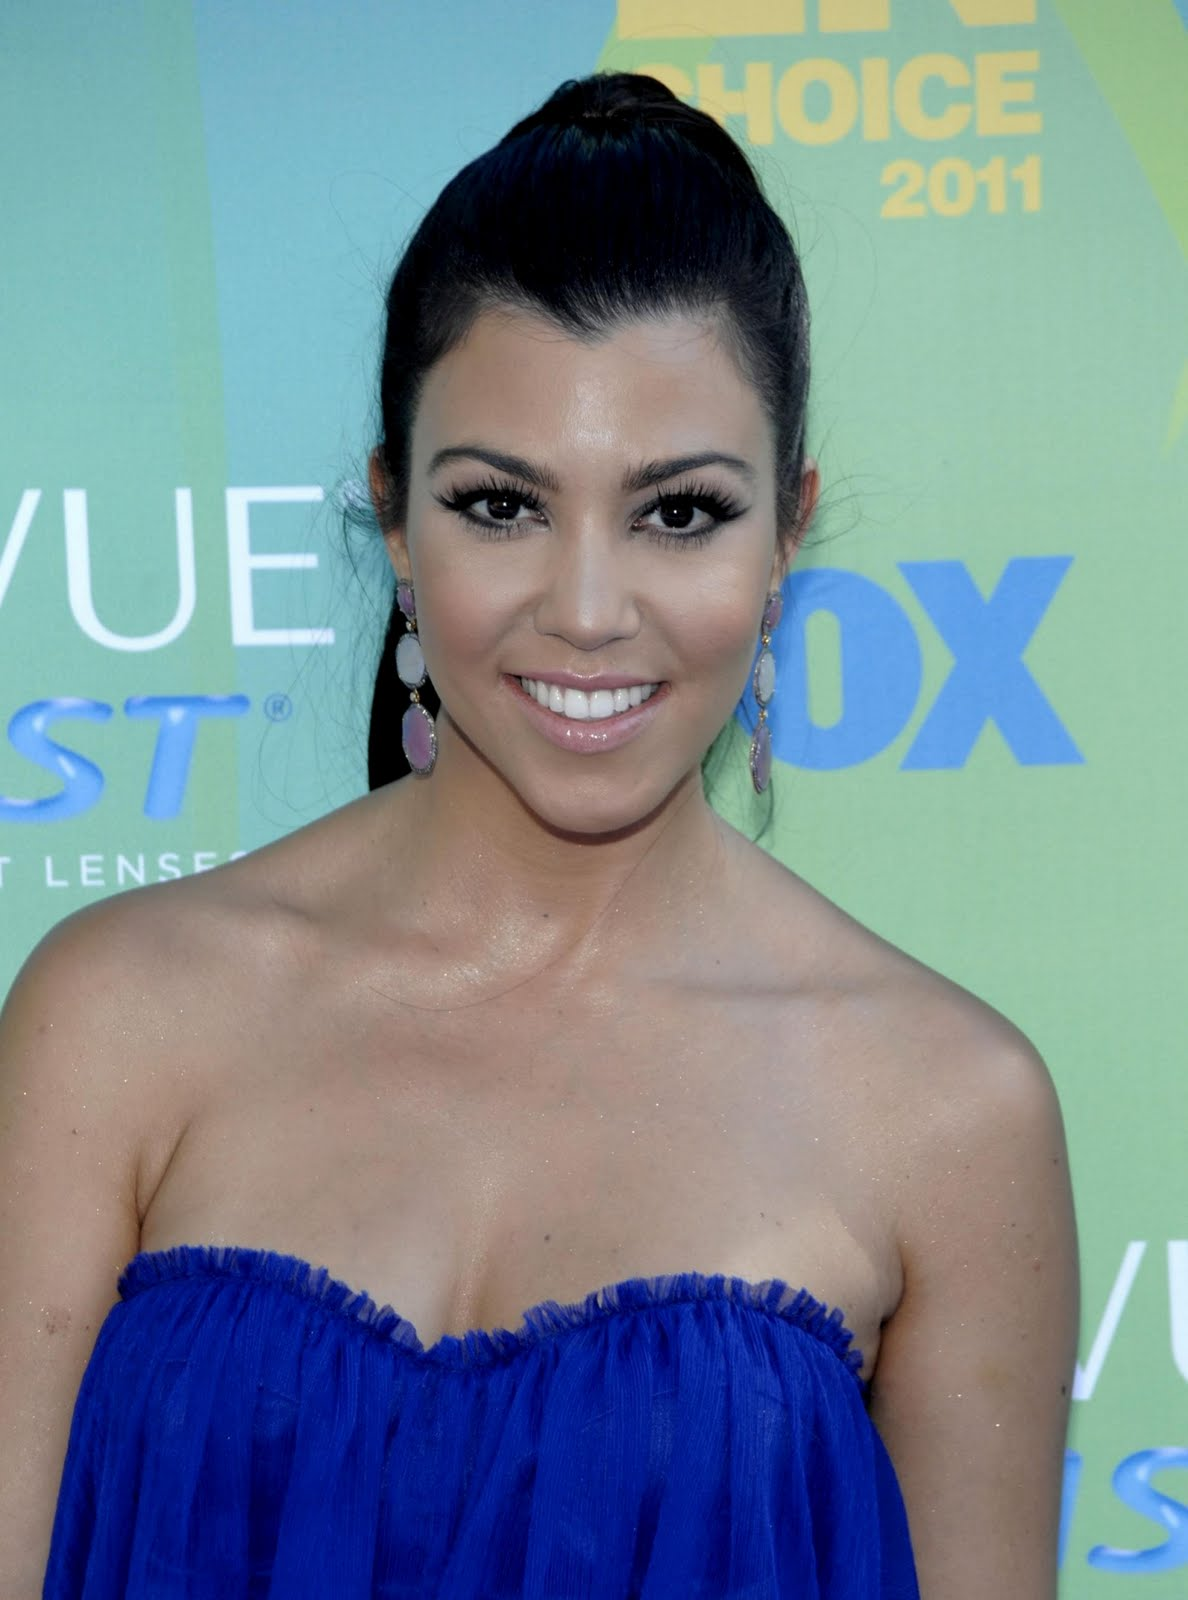 Kourtney Kardashian Nude Pictures